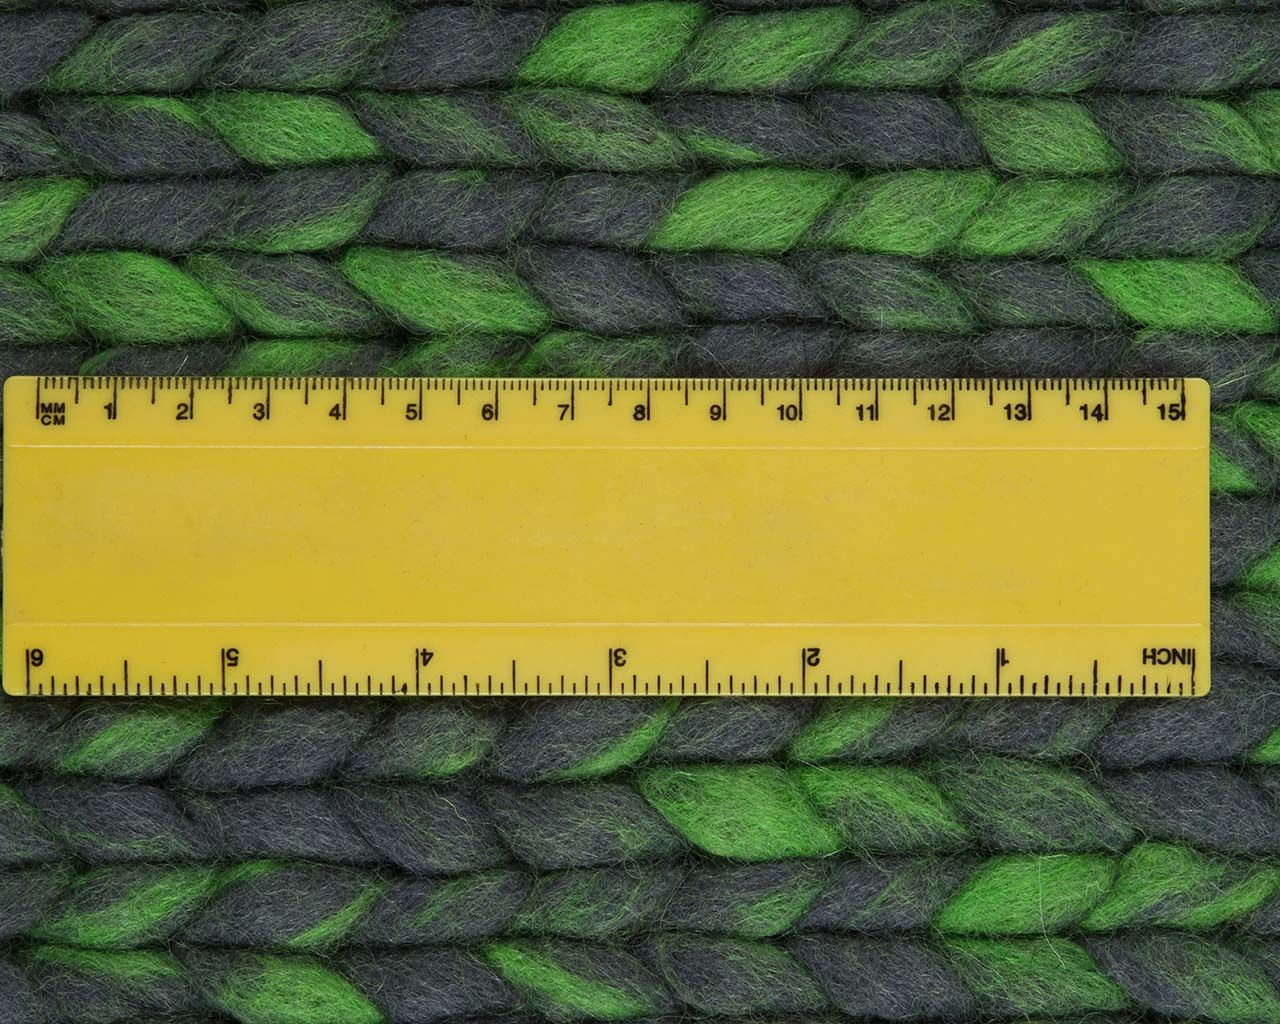 lime green wool asian style carpets measuring